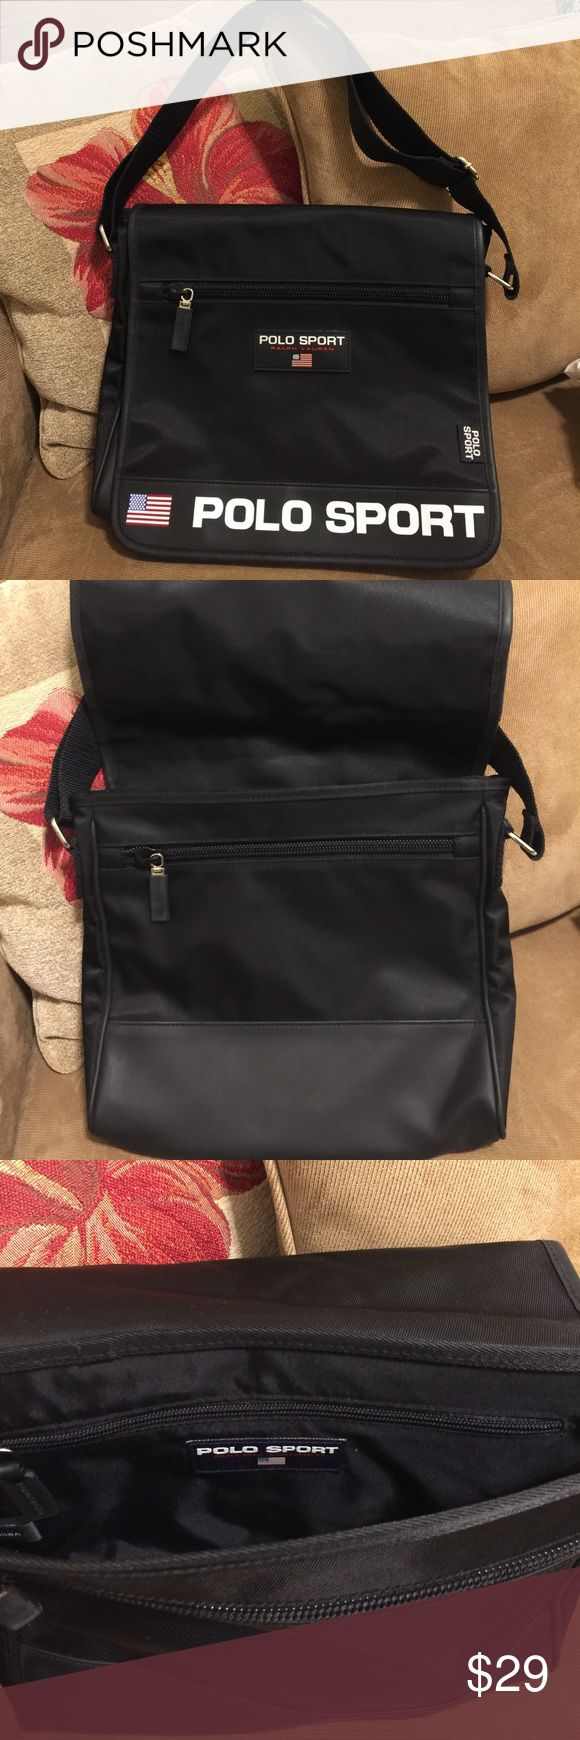 NWOT Vintage Polo Sport Ralph Lauren Black Bag New without tag Vintage Polo Sport Ralph Lauren black bag. Canvas. Adjustable strap. Silver metal. Zipper in front and inside underneath front cover. And one zipper pocket inside bag. Smoke-free/pet free home. No international shipping. Thank you so much for looking!😊 Polo by Ralph Lauren Bags Crossbody Bags